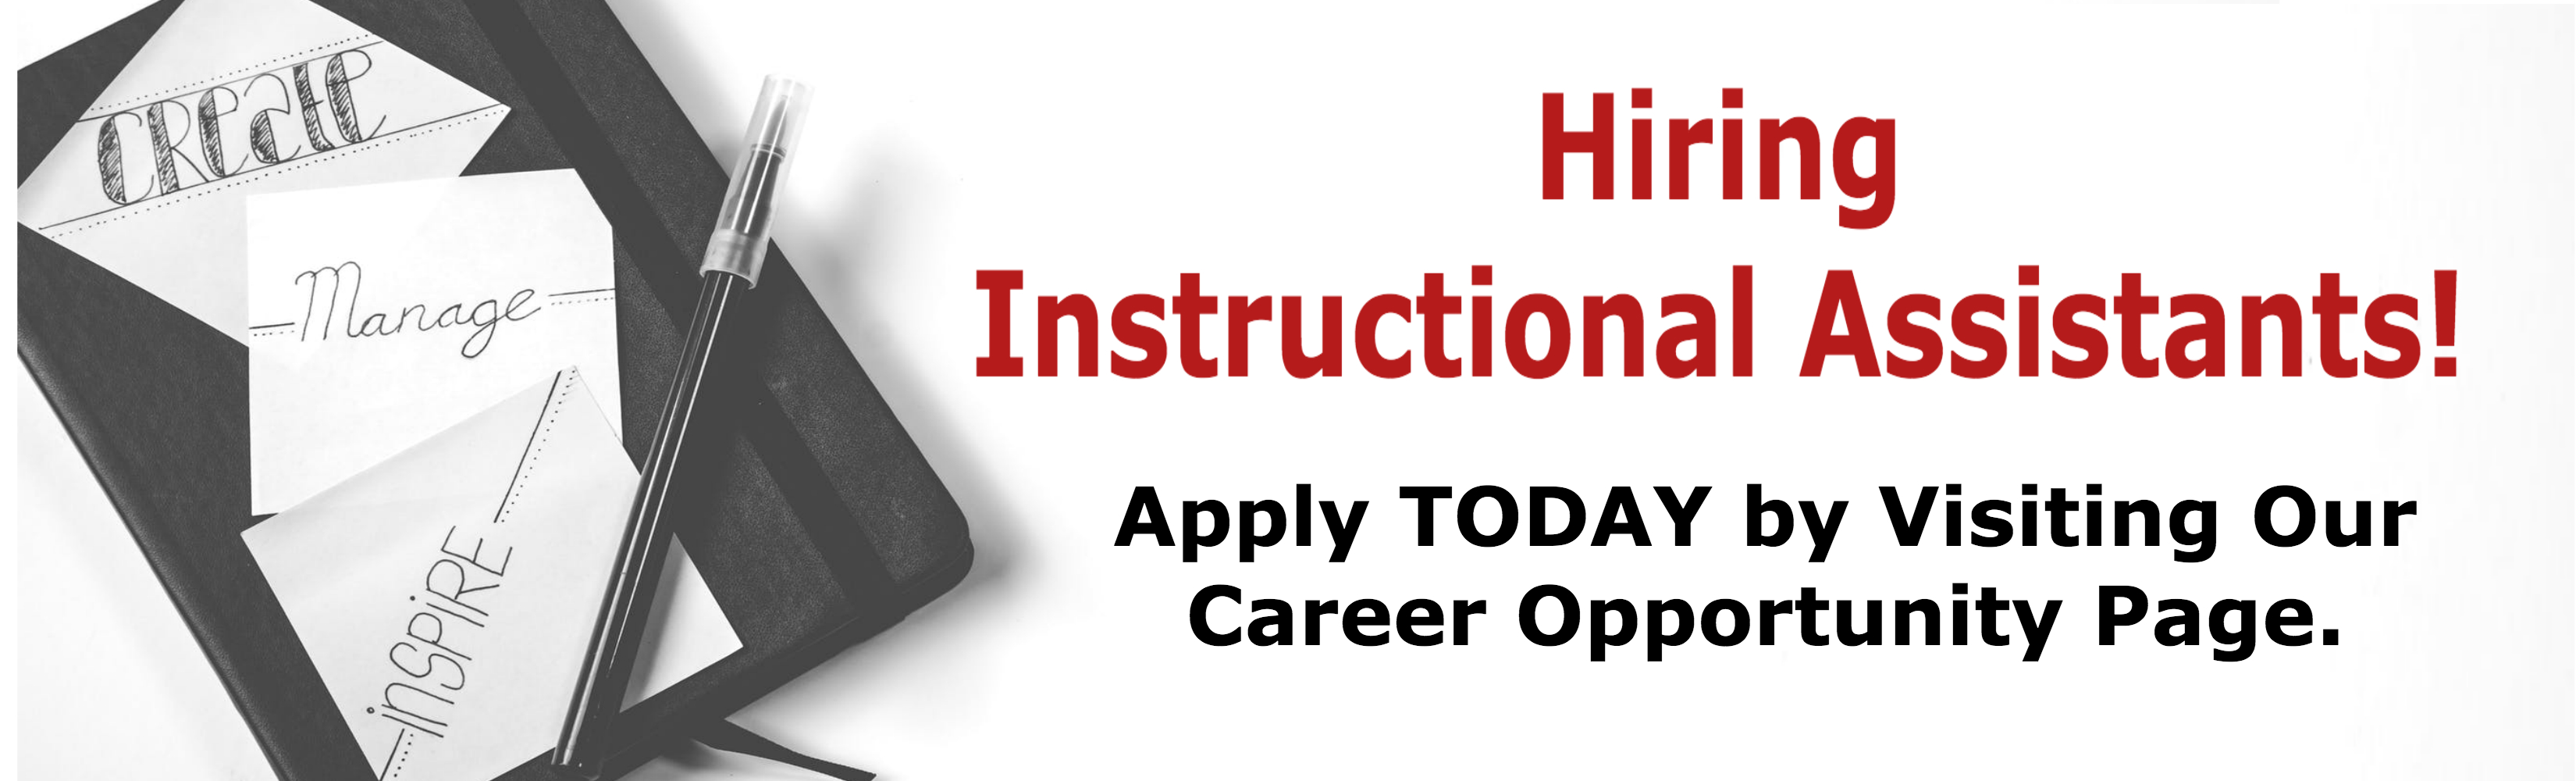 Hiring-Instructional-Assistants